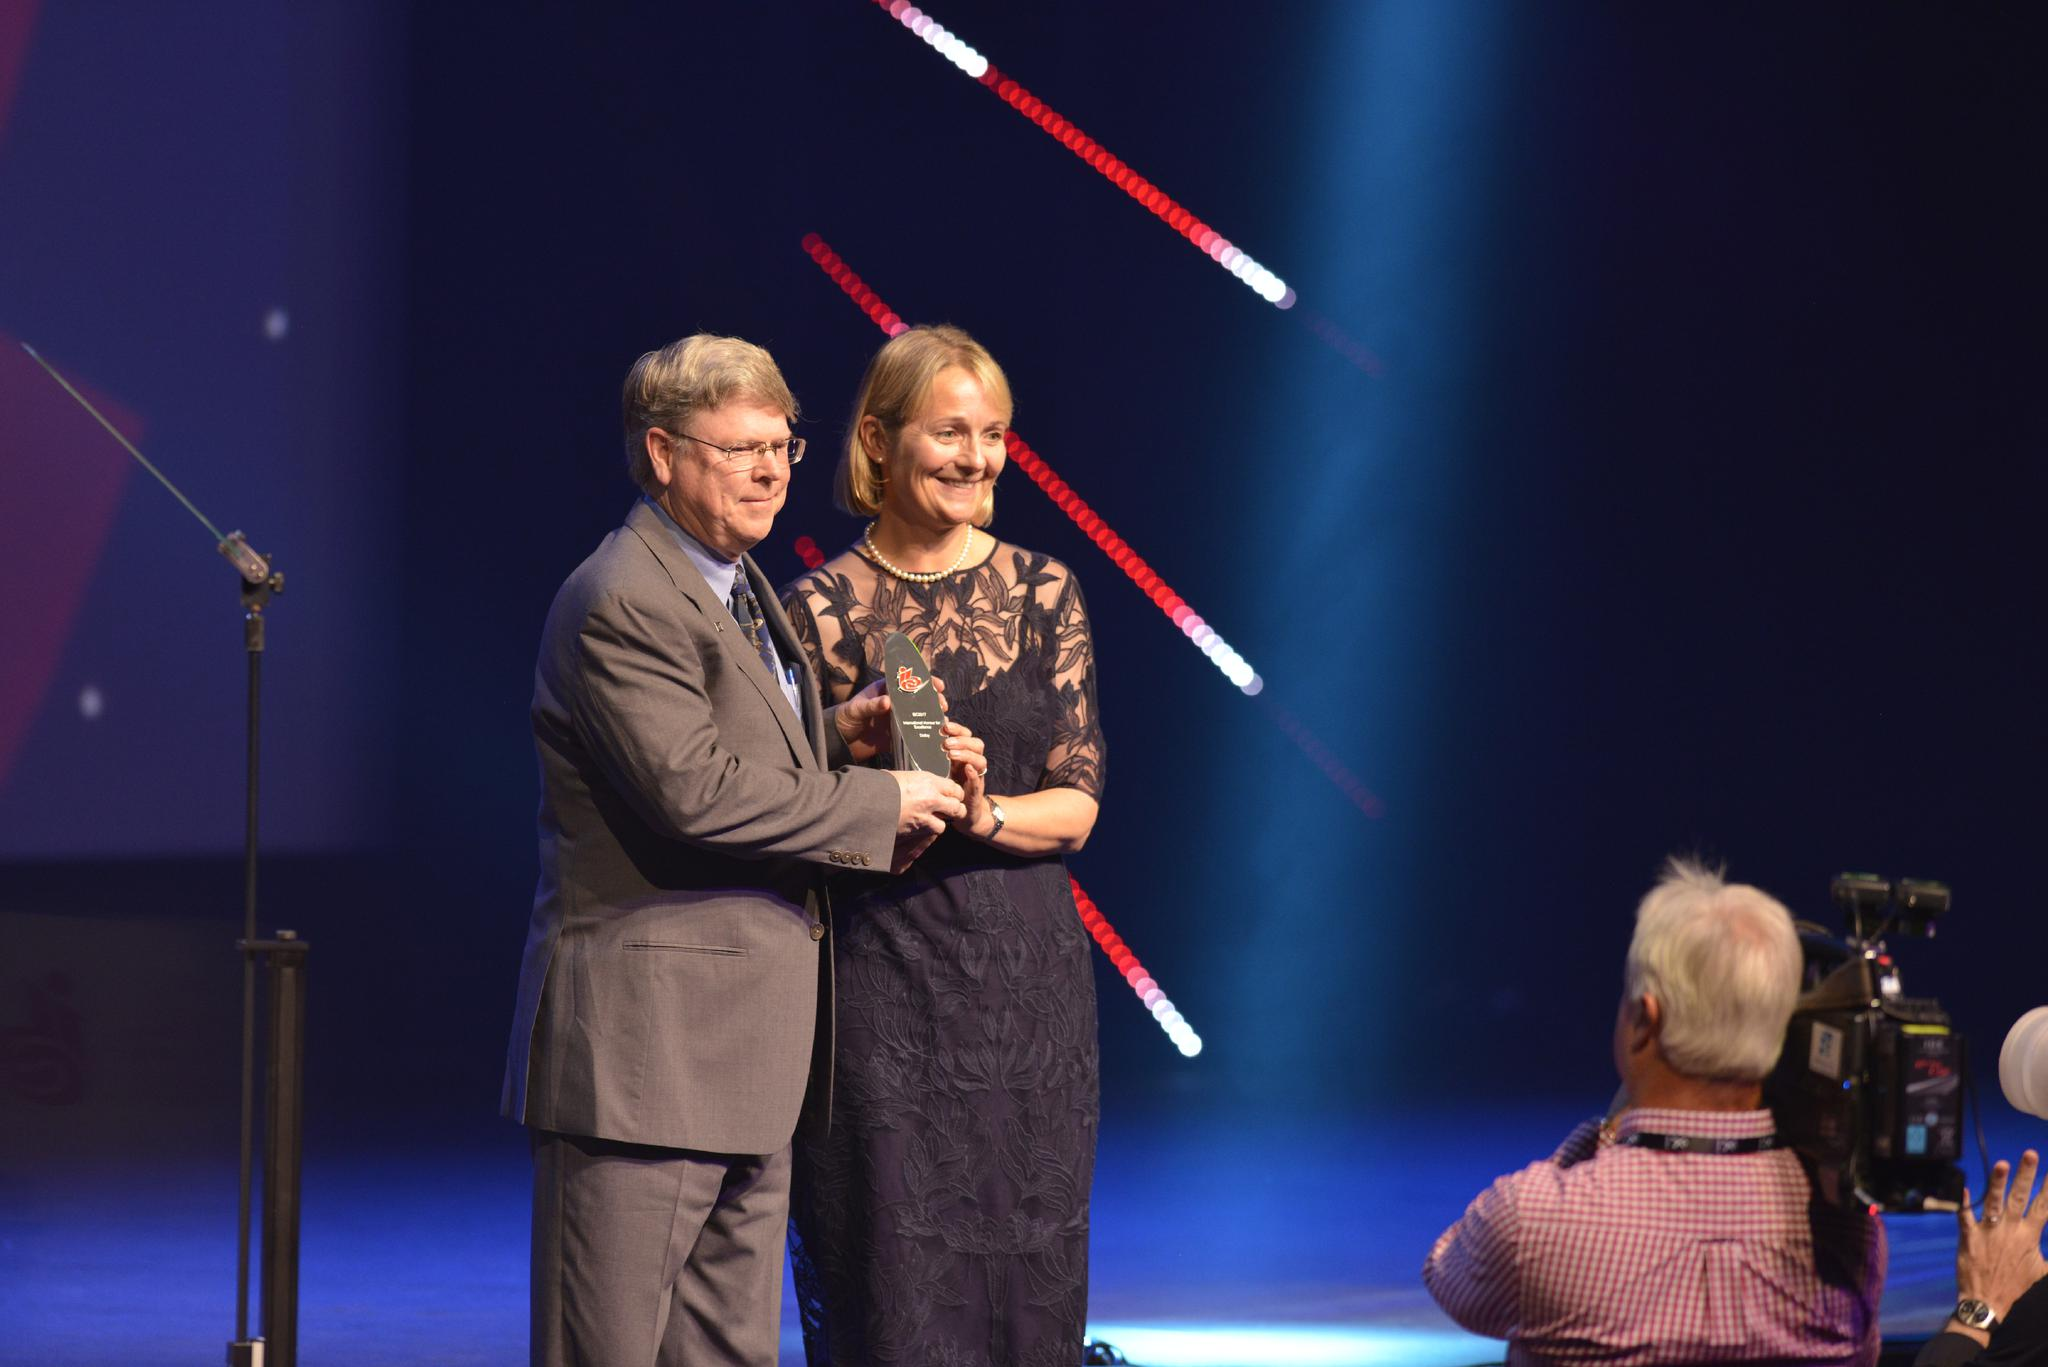 IBC calls for the best in innovation